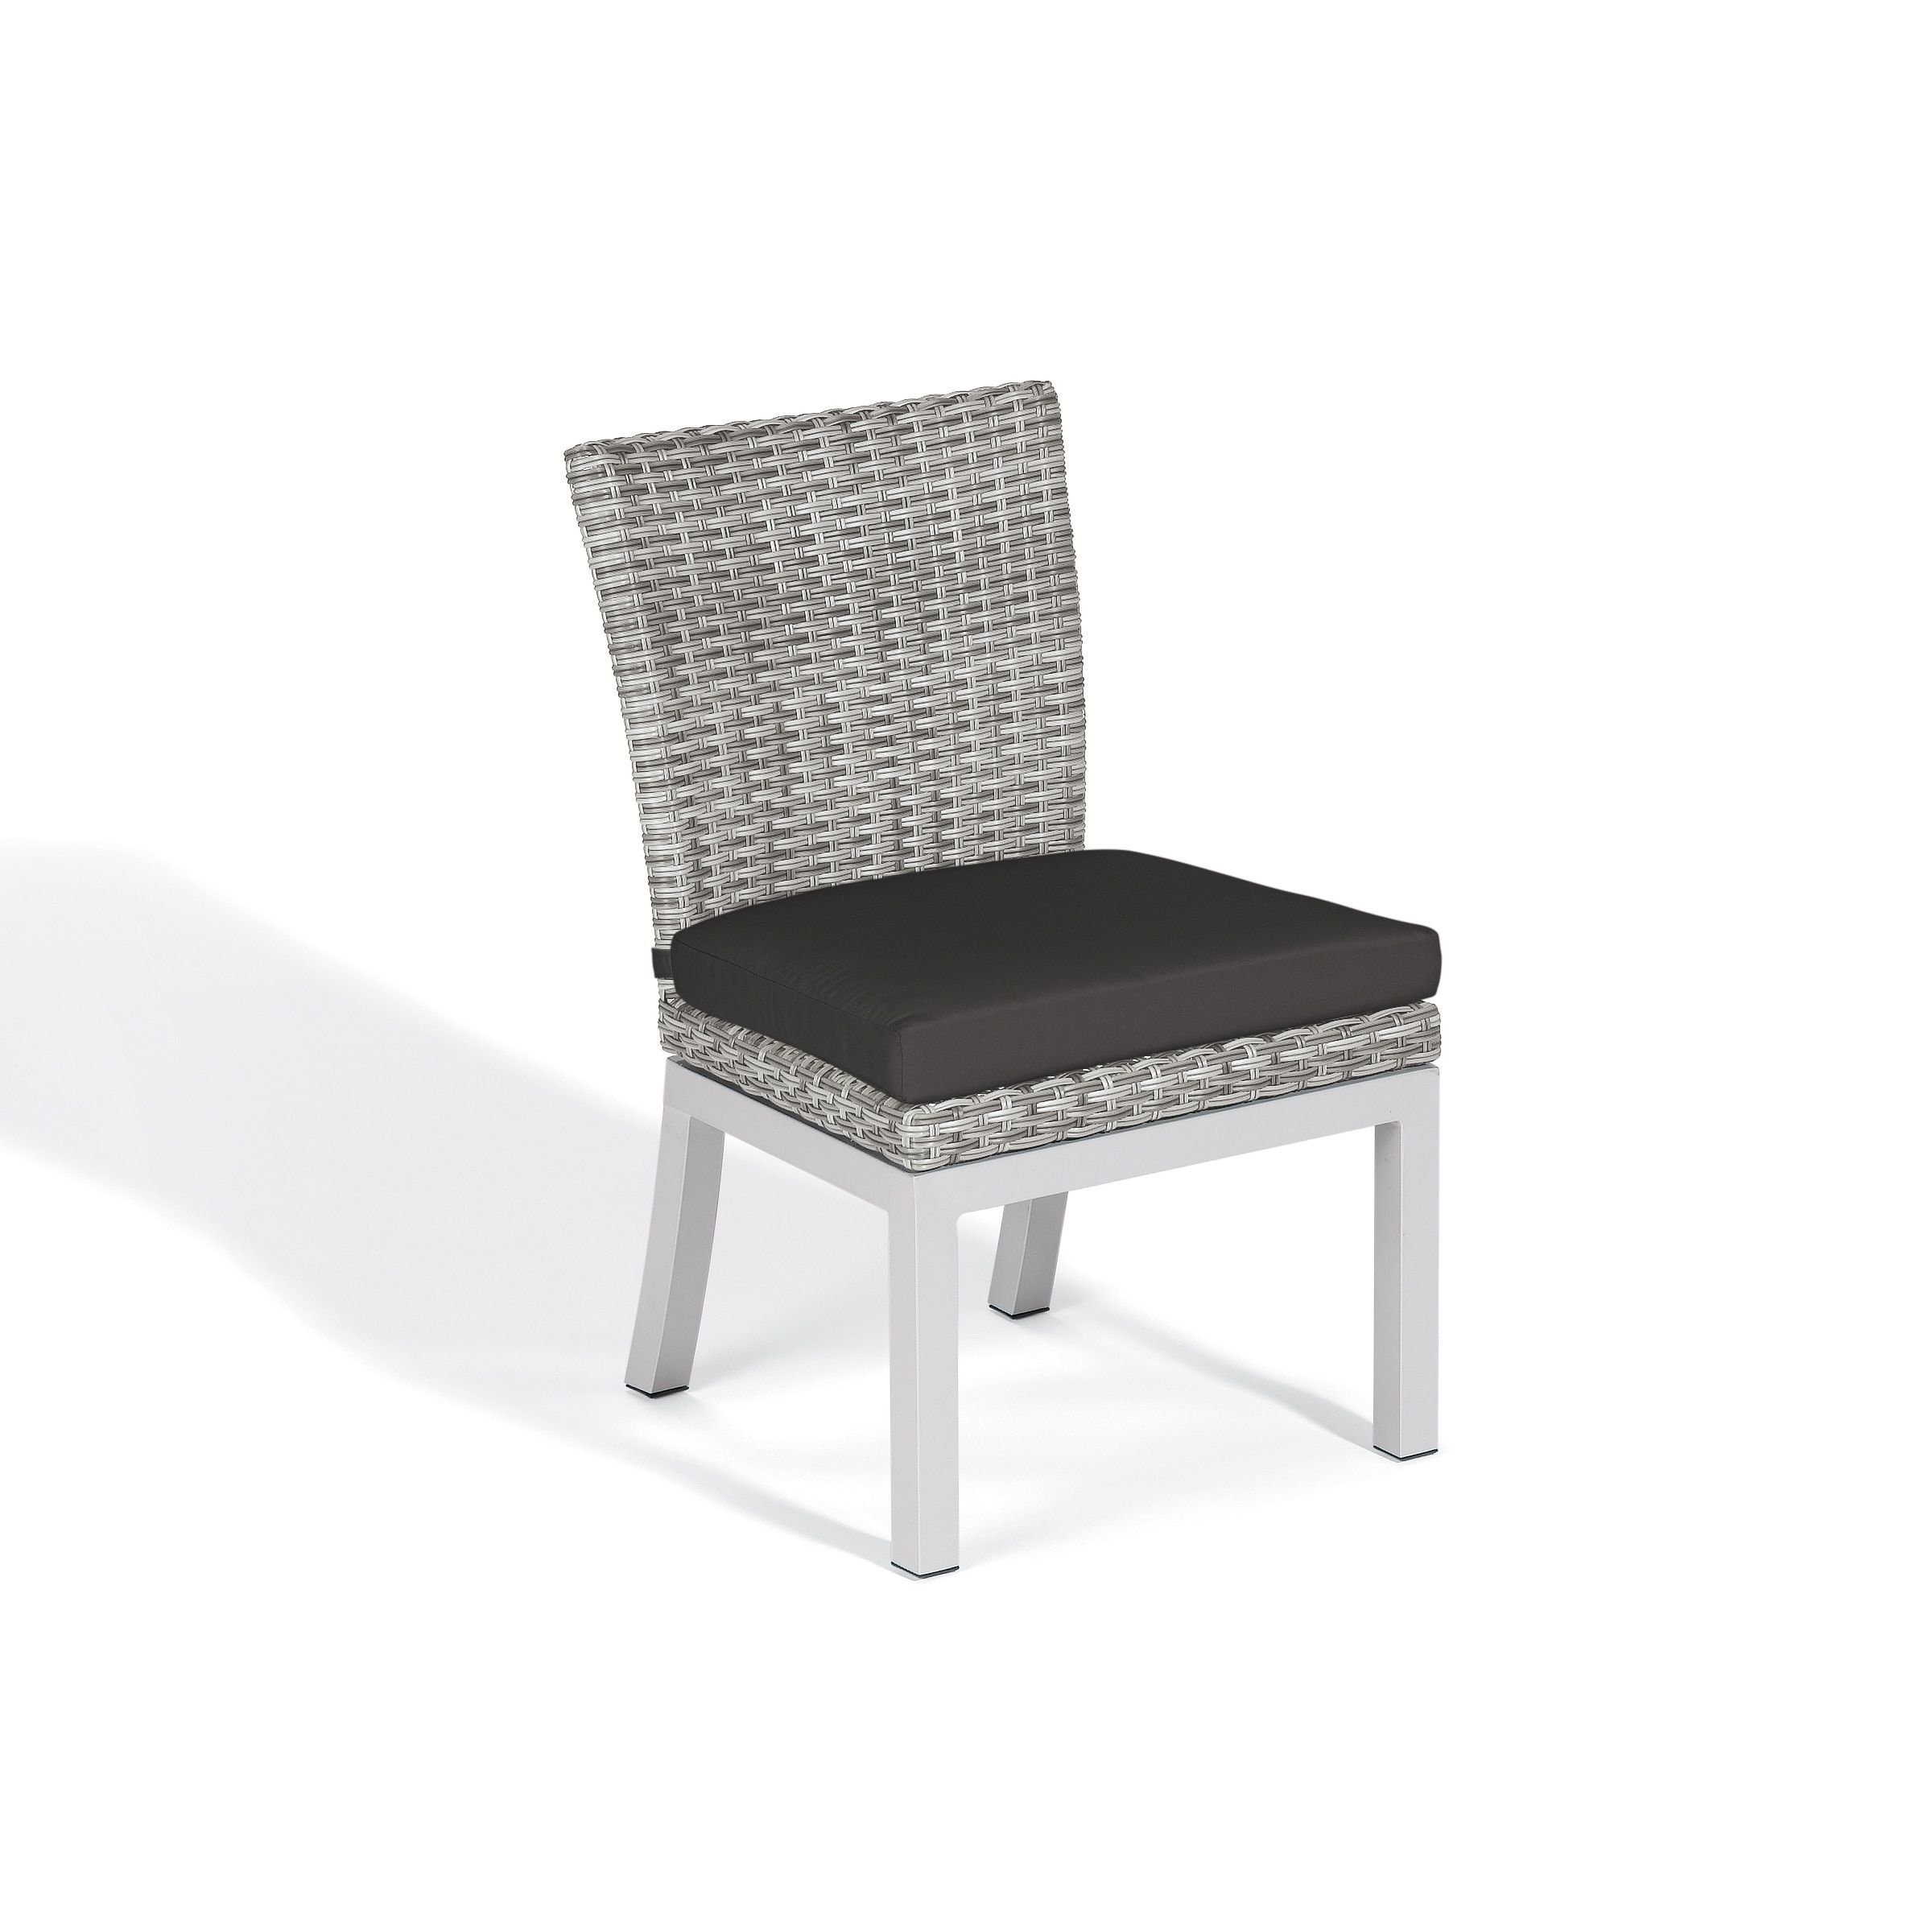 Oxford Garden Travira Woven Side Chair with Powder Coated Aluminum